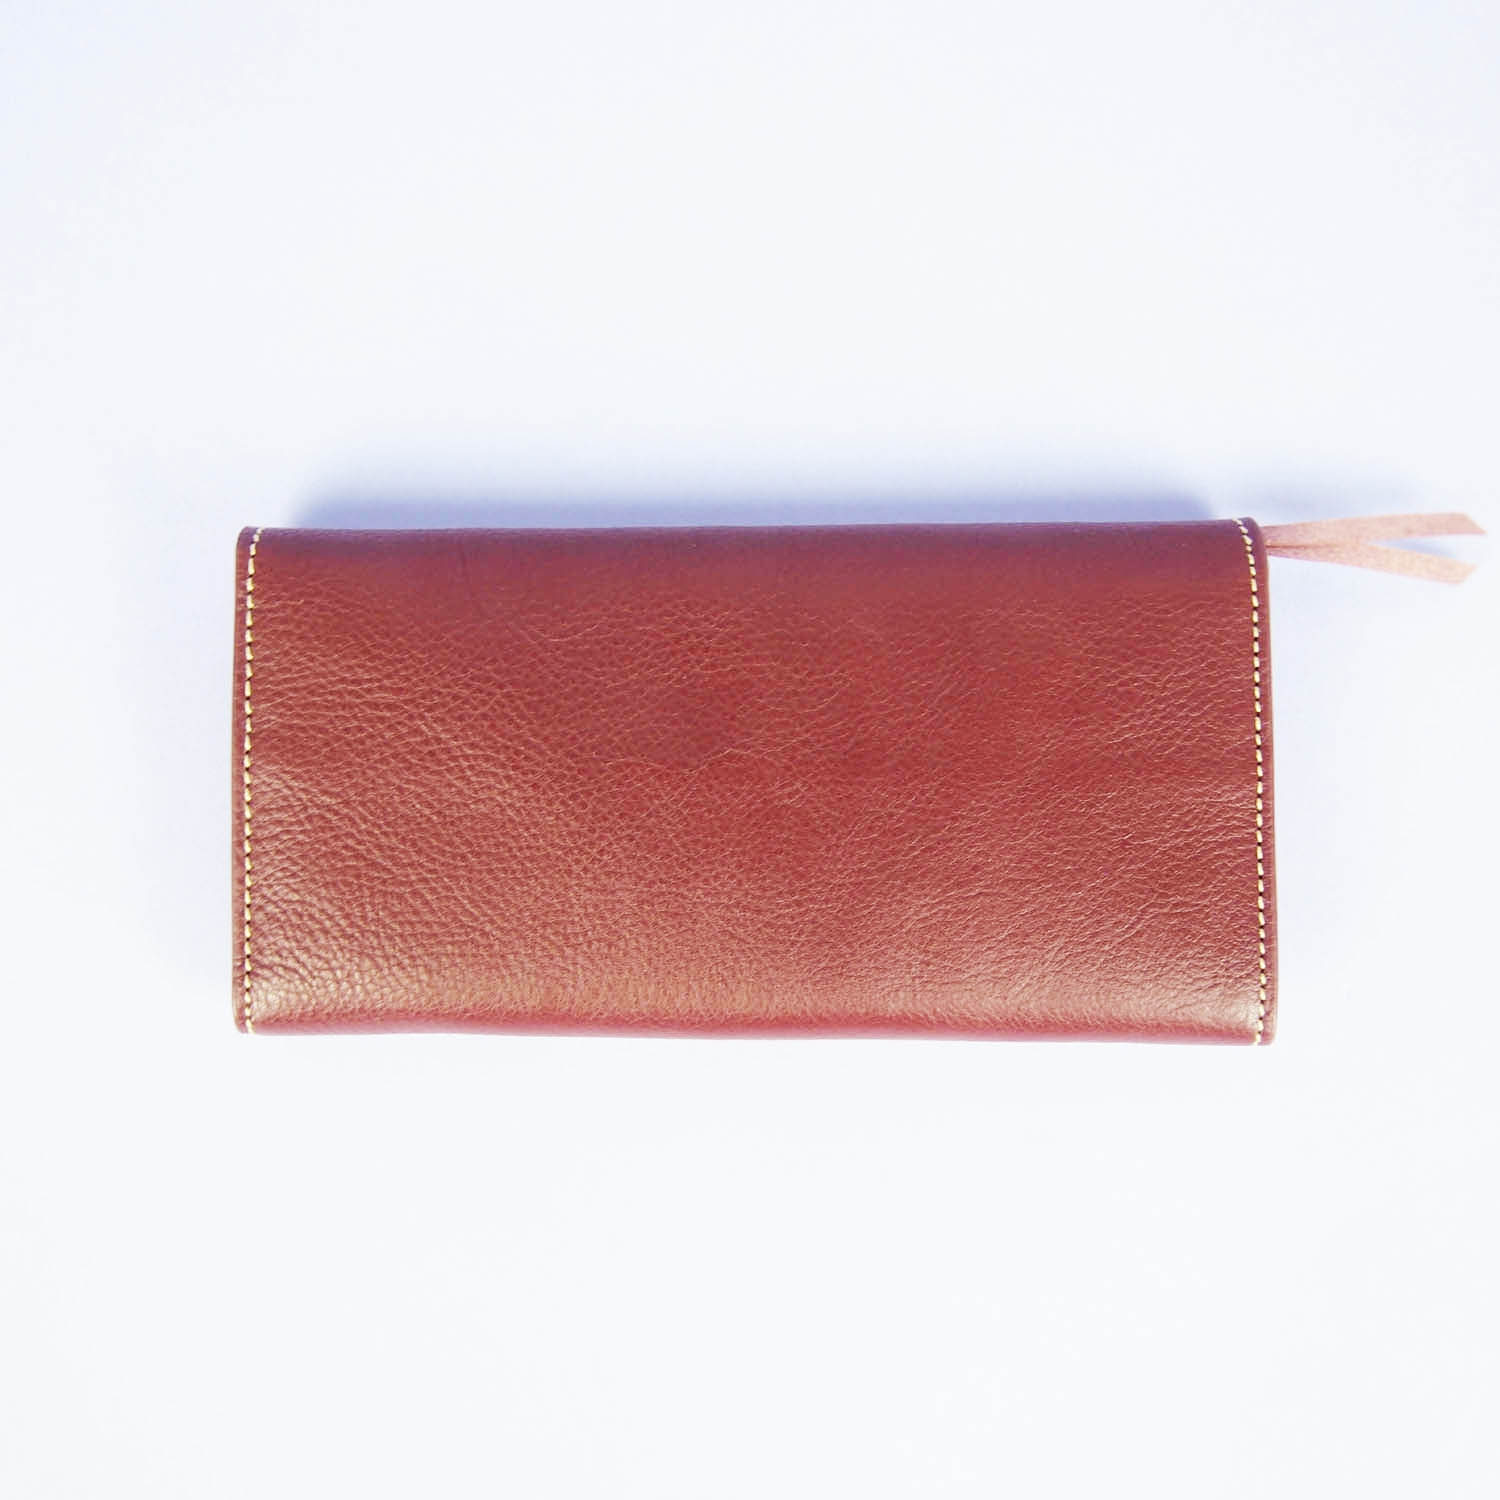 Butterfield bree Wallet Front View